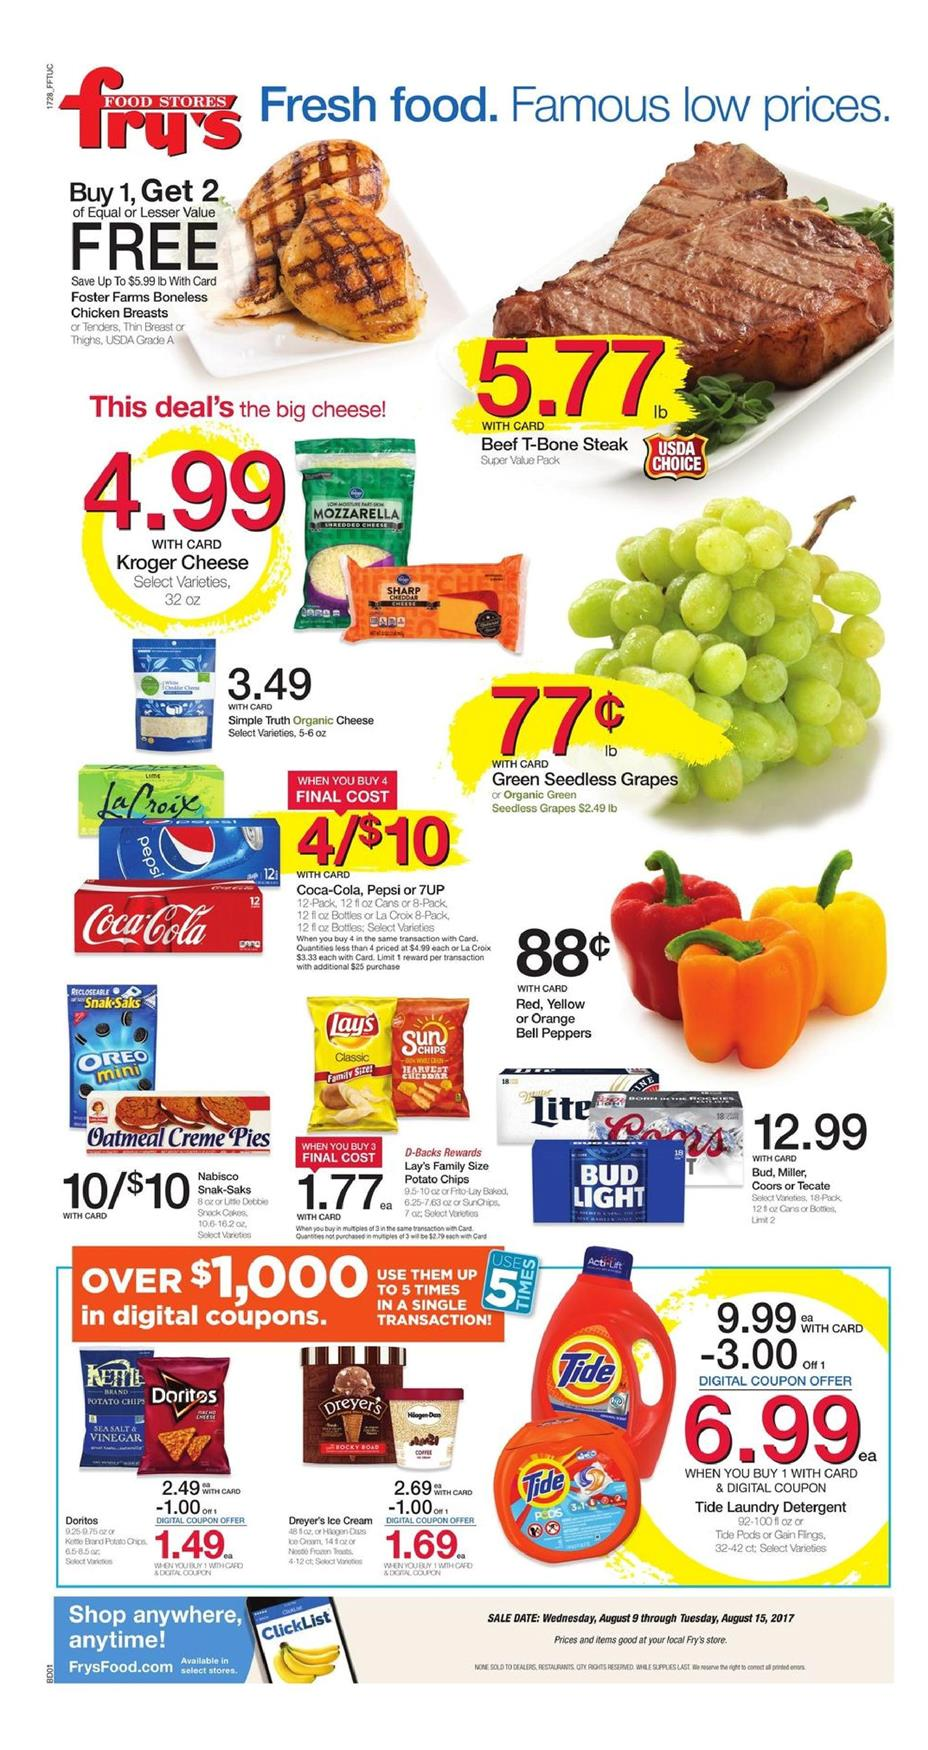 Smith's grocery store digital coupons